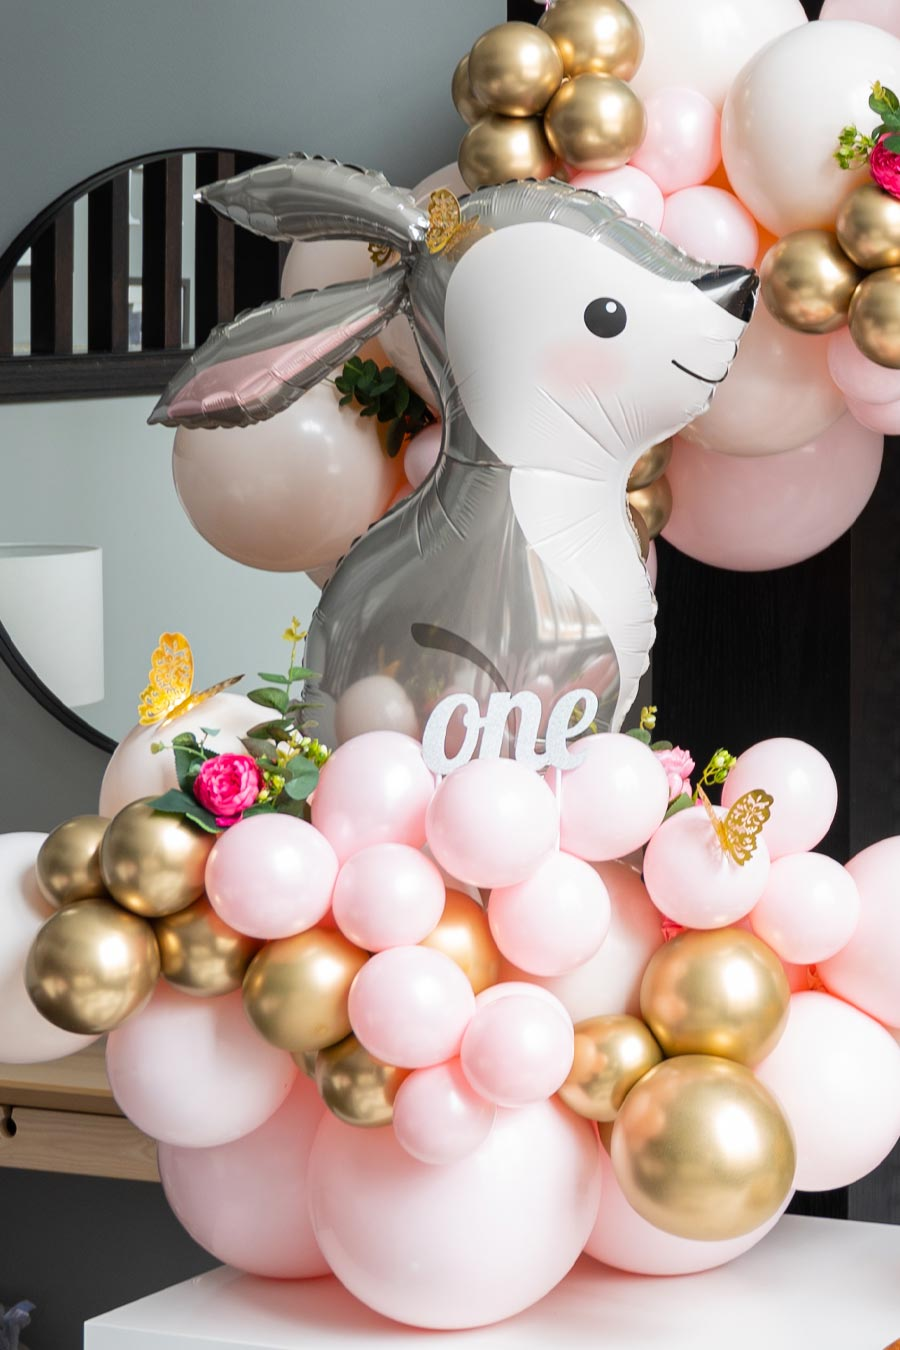 first birthday party ideas for girls, first birthday party, woodland creatures birthday party, forest friends birthday party, feminine forest theme for birthday party, kids birthday party ideas, woodland creature balloon display, woodland creature balloon arch, fox balloons, bunny balloons, first birthday party balloon arch, pink and gold balloon arch, birthday party ideas girls, birthday party inspiration, kids birthday party inspo, baby birthday party, first birthday party inspo, first birthday party inspiration, first birthday party ideas baby girl, baby girl first birthday party, inflated dreams yyc, balloon art Calgary, Sugarbakers cookie co, custom cookies Calgary, crave cupcakes cake, fox cake